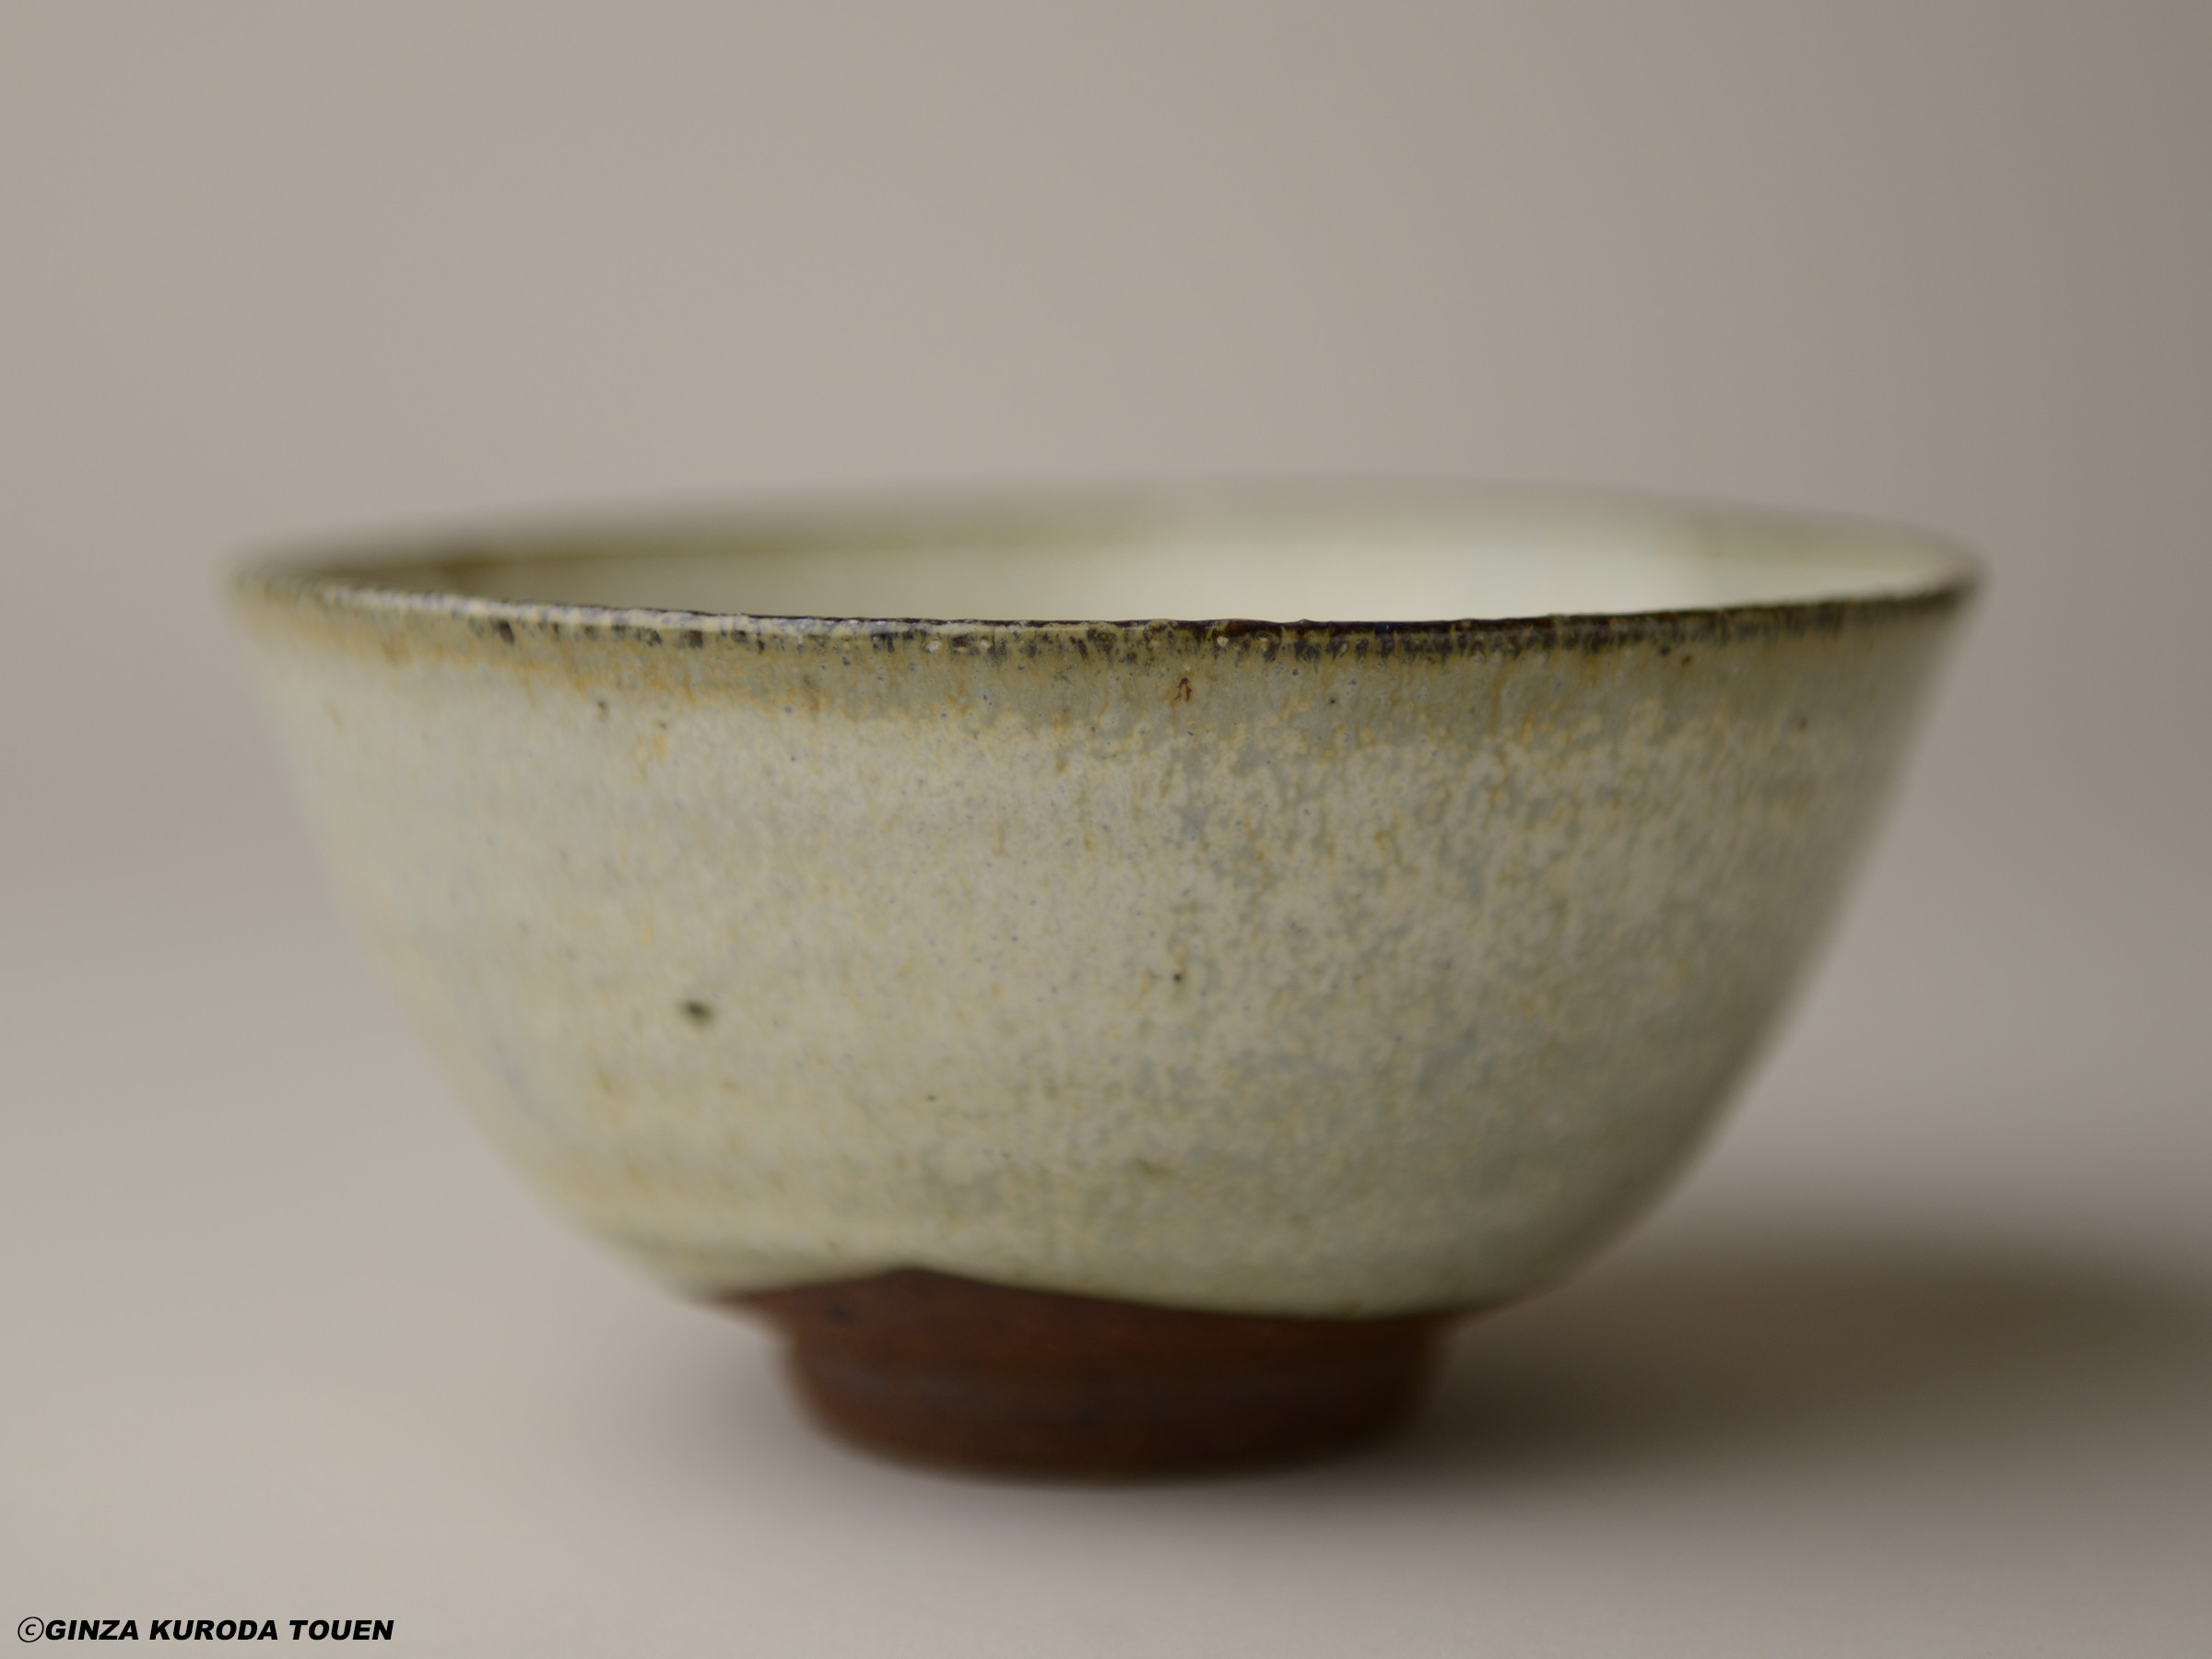 Munemaro Ishiguro: Tea bowl, Opaque glaze